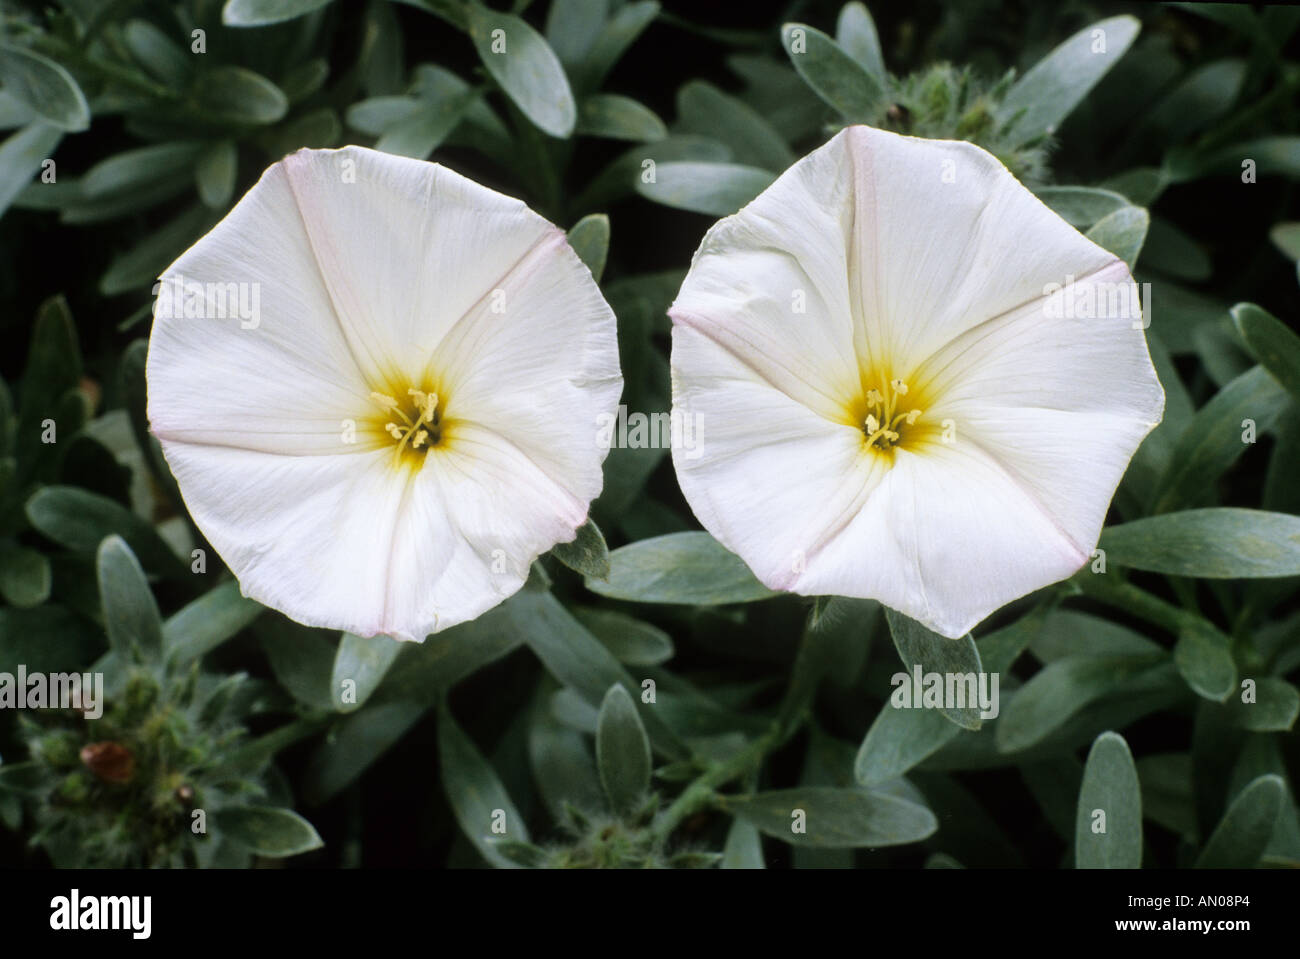 Convolvulus Cneorum Climbing Garden Plant White Flowers May